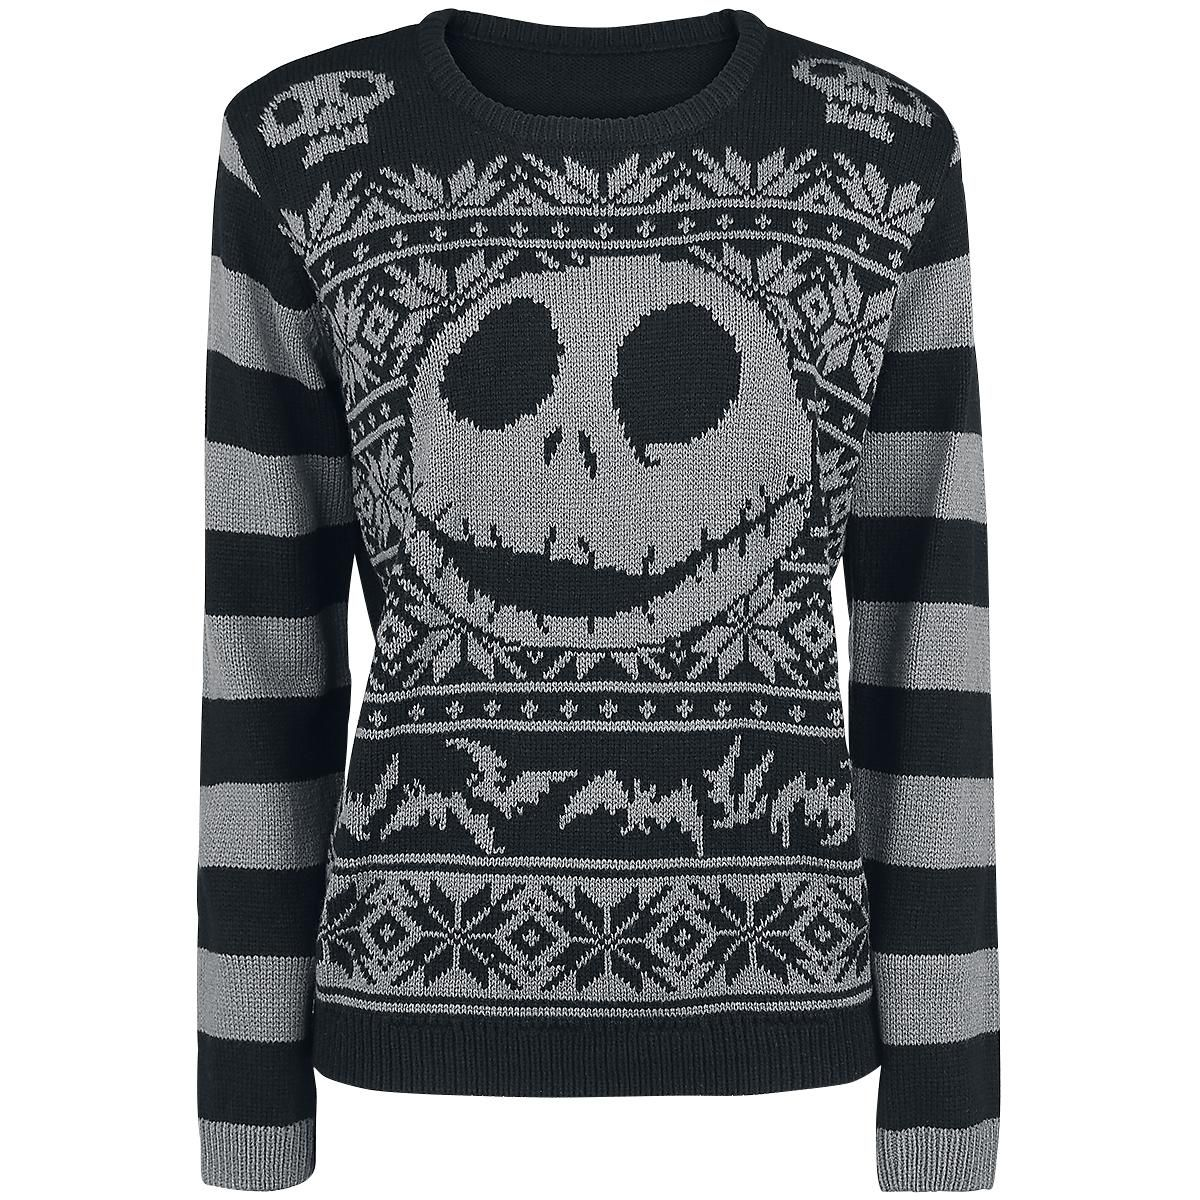 Kersttrui 68.Jack Skellington Christmas Sweater Christmas Jumper Van The